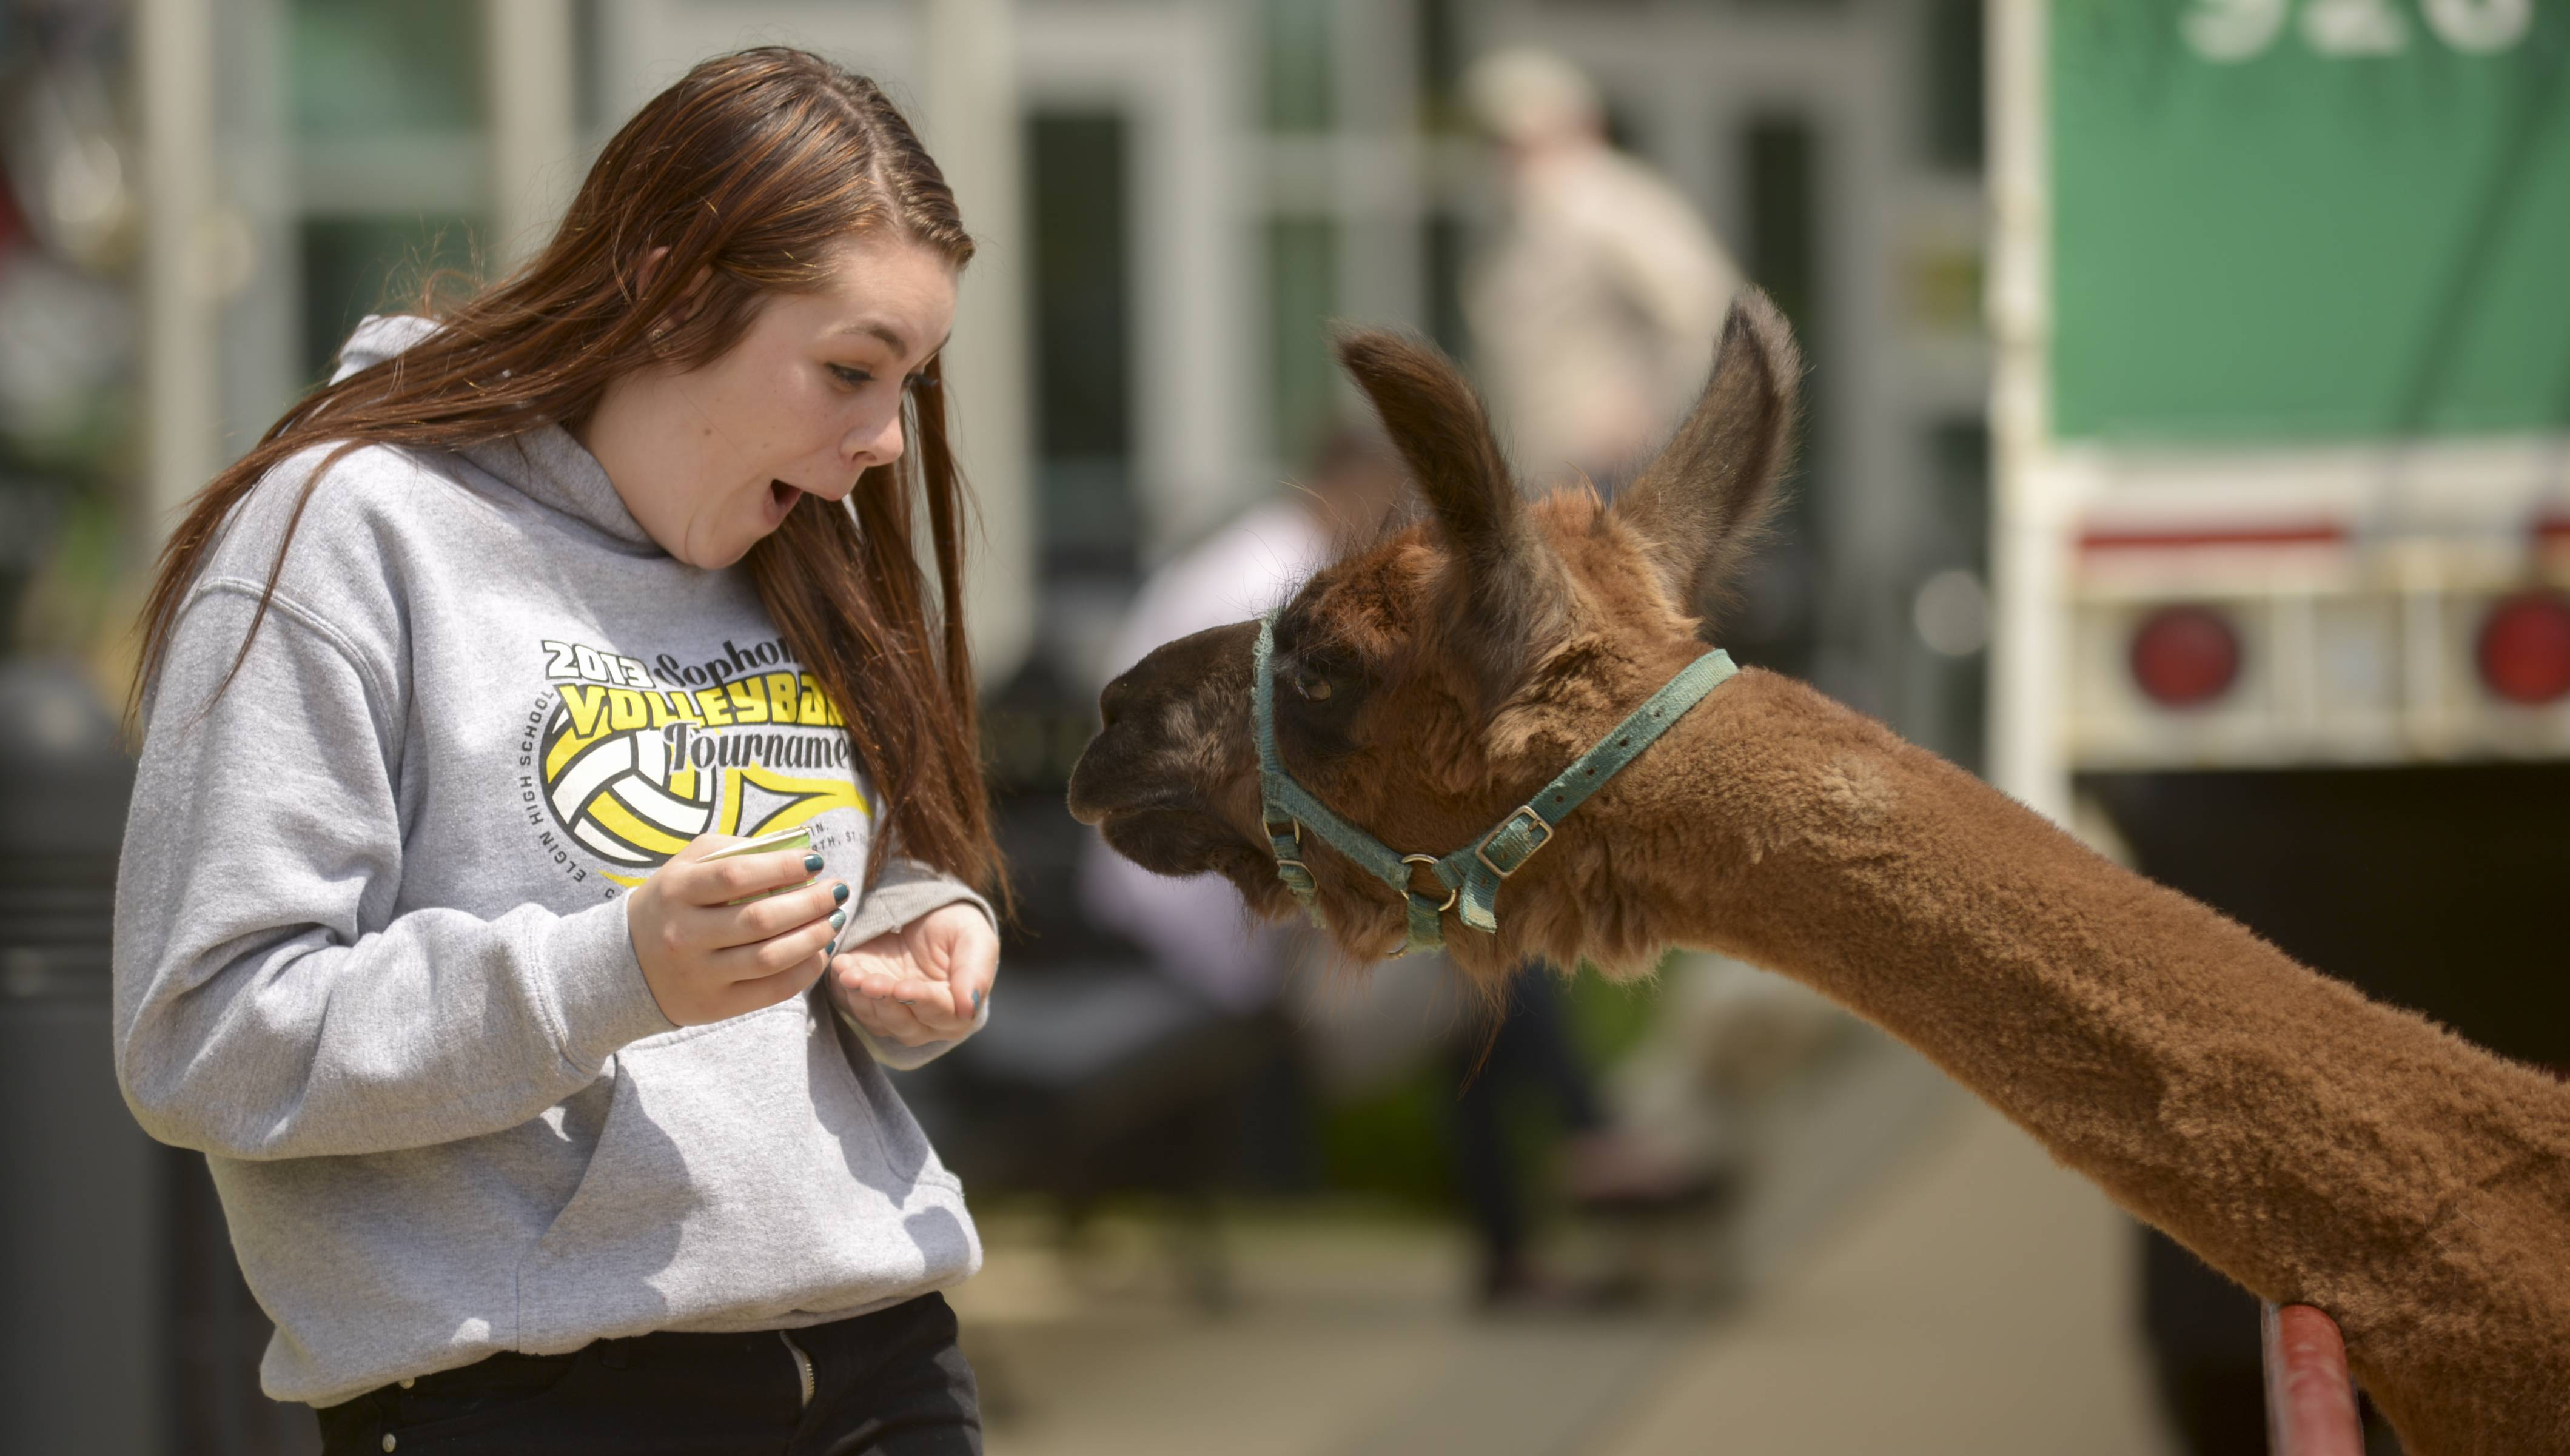 Taylor Gillen, 16, of Elgin, gives a funny look back to the lama in search of a snack at the Elgin Green Expo at the Centre of Elgin, Saturday. The lama and other petting zoo farm animals were on display by Santa's Village Azoosment Park in East Dundee.